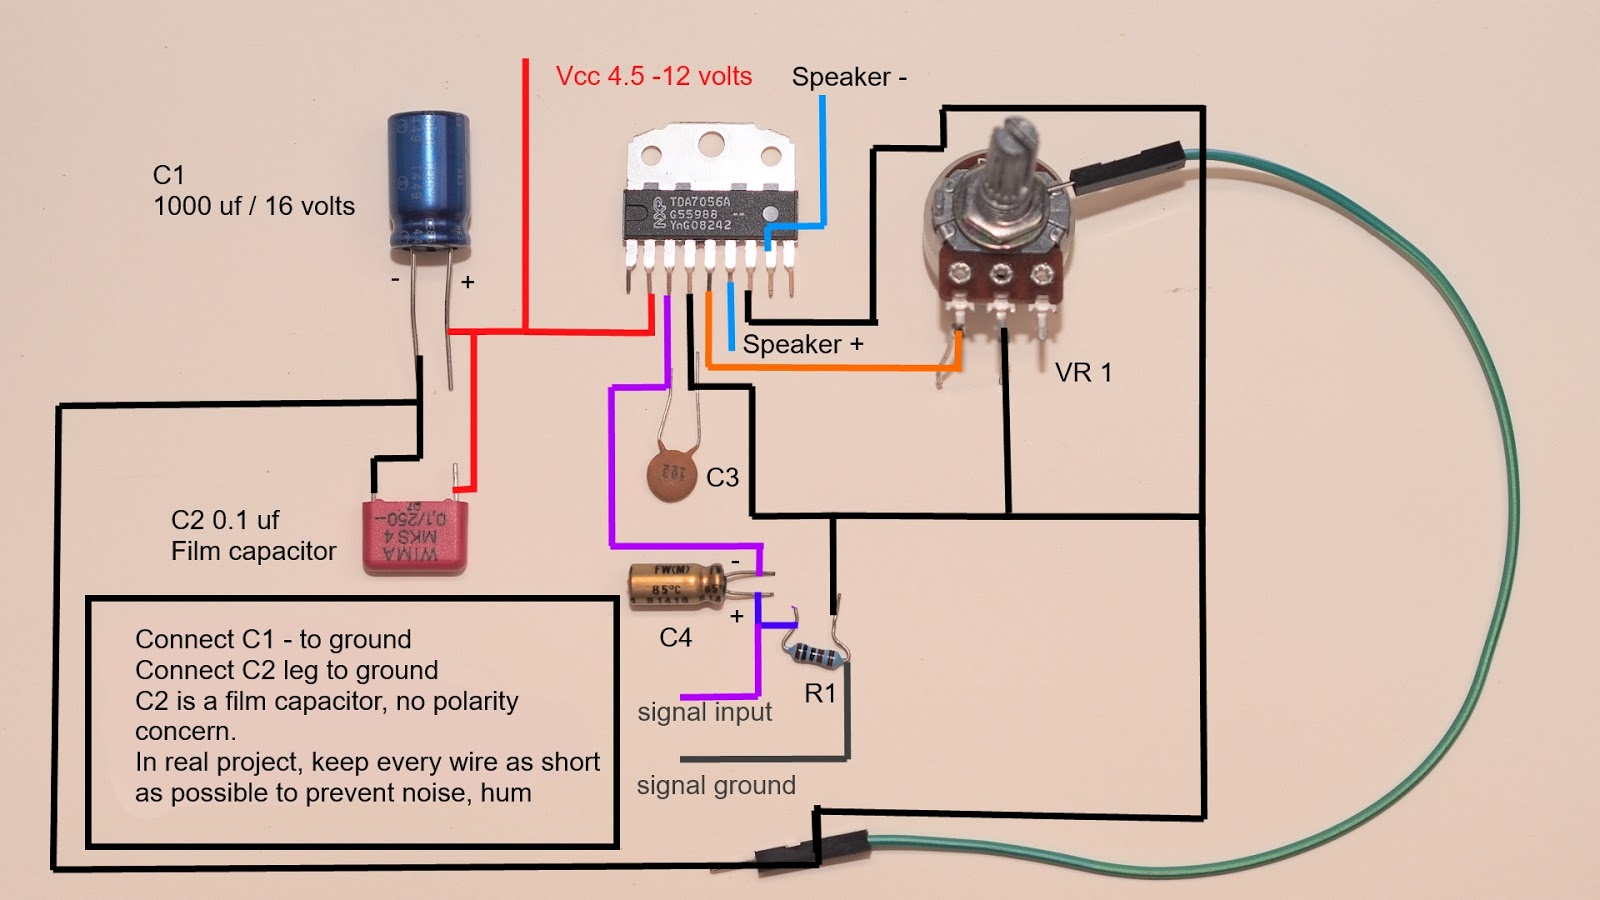 Asystems furthermore Active Crossover Wiring Diagram moreover 4o2v82 also Working On The Wiring System in addition Basic. on car audio system wiring basics